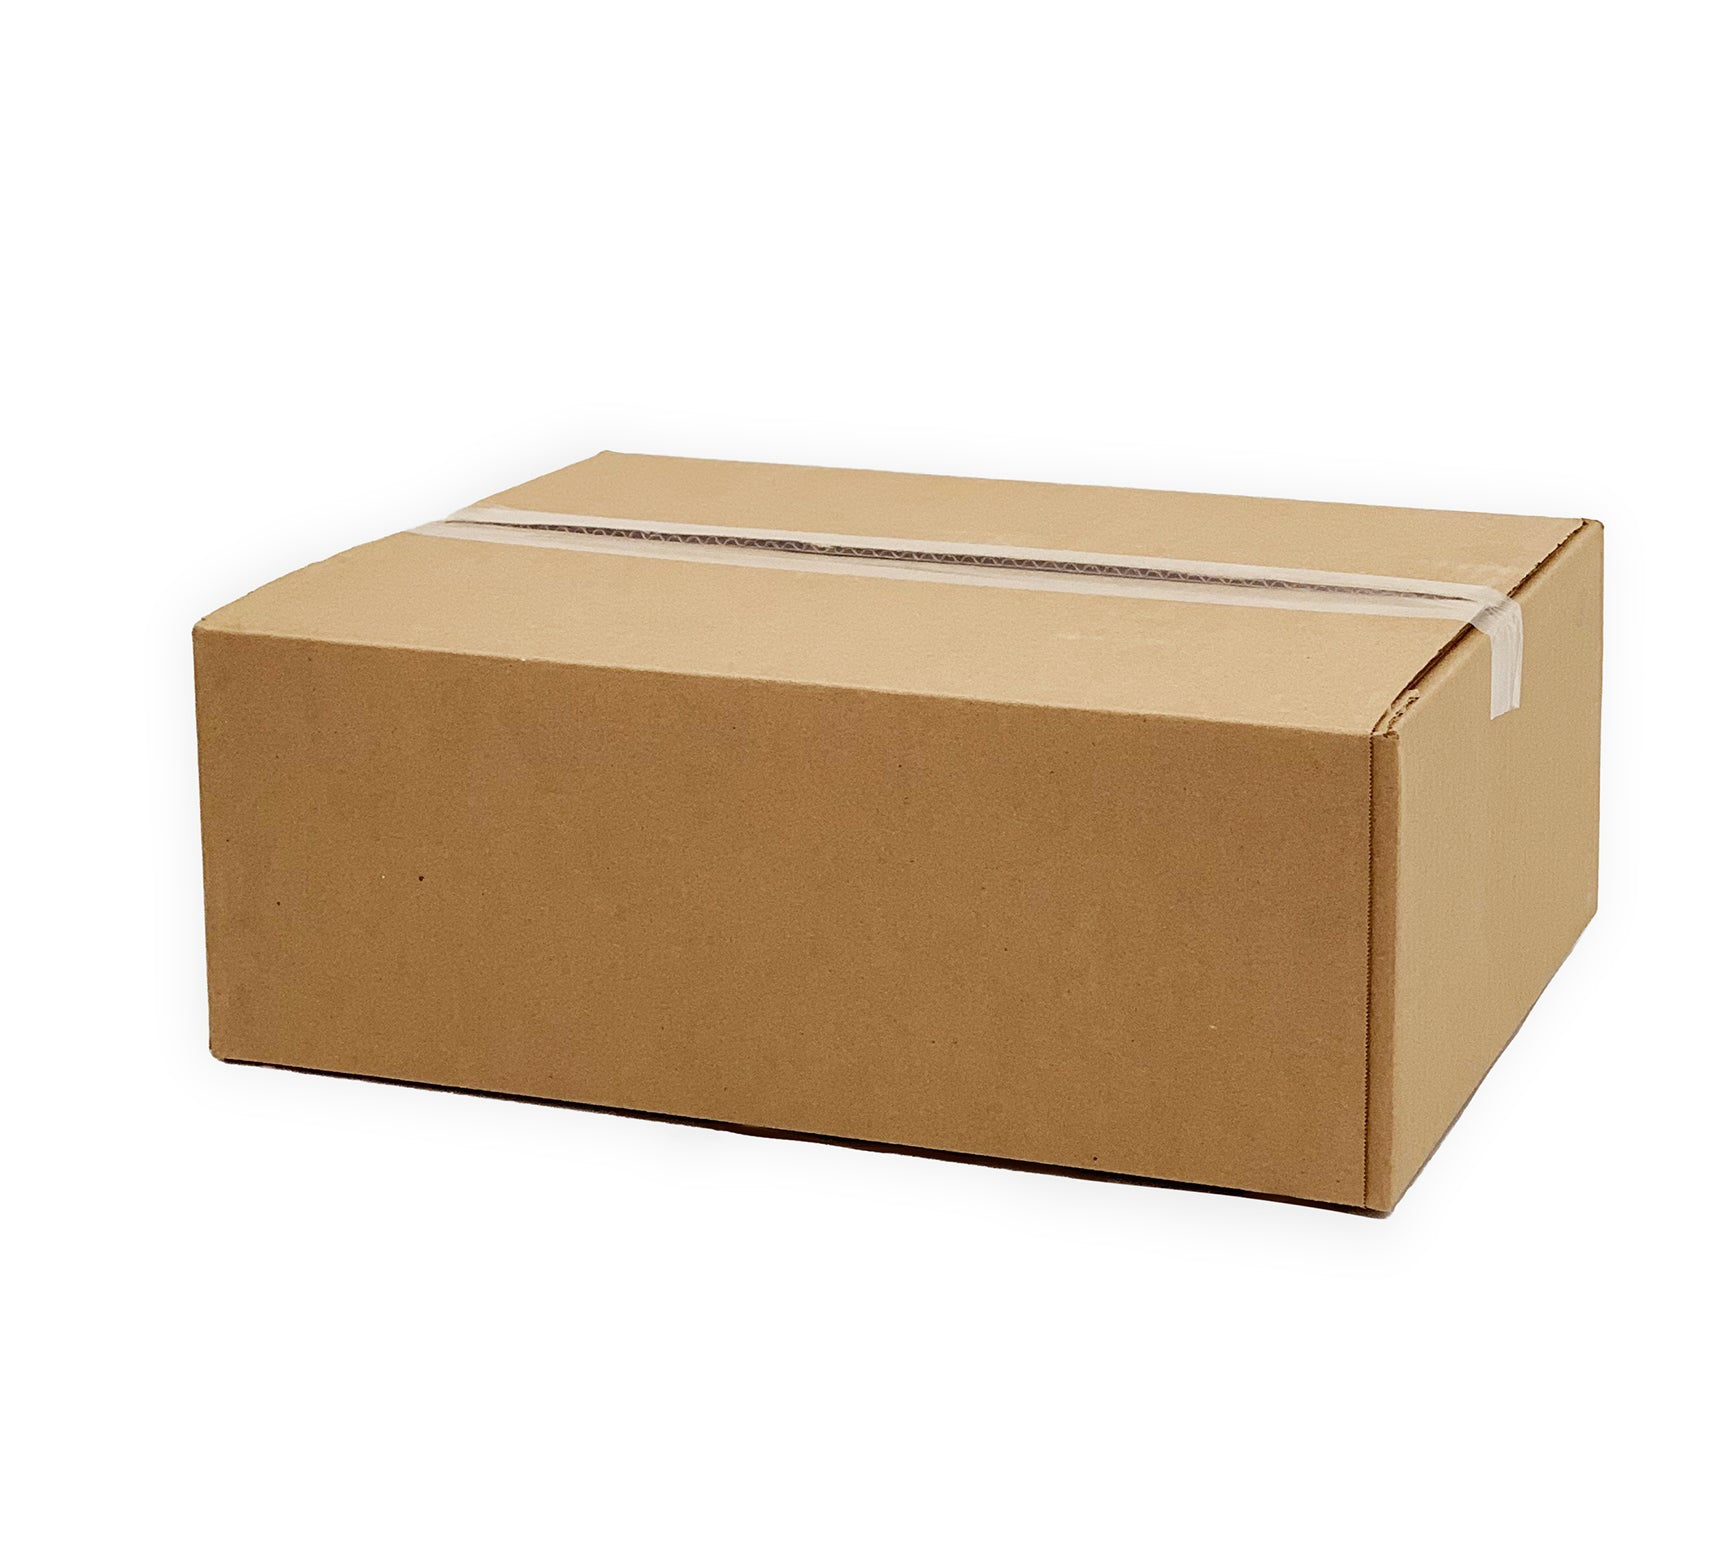 Small Shipping Box - 17″ x 13″ x 6″ - Packing R Us Moving Packing Shipping Storing Boxes